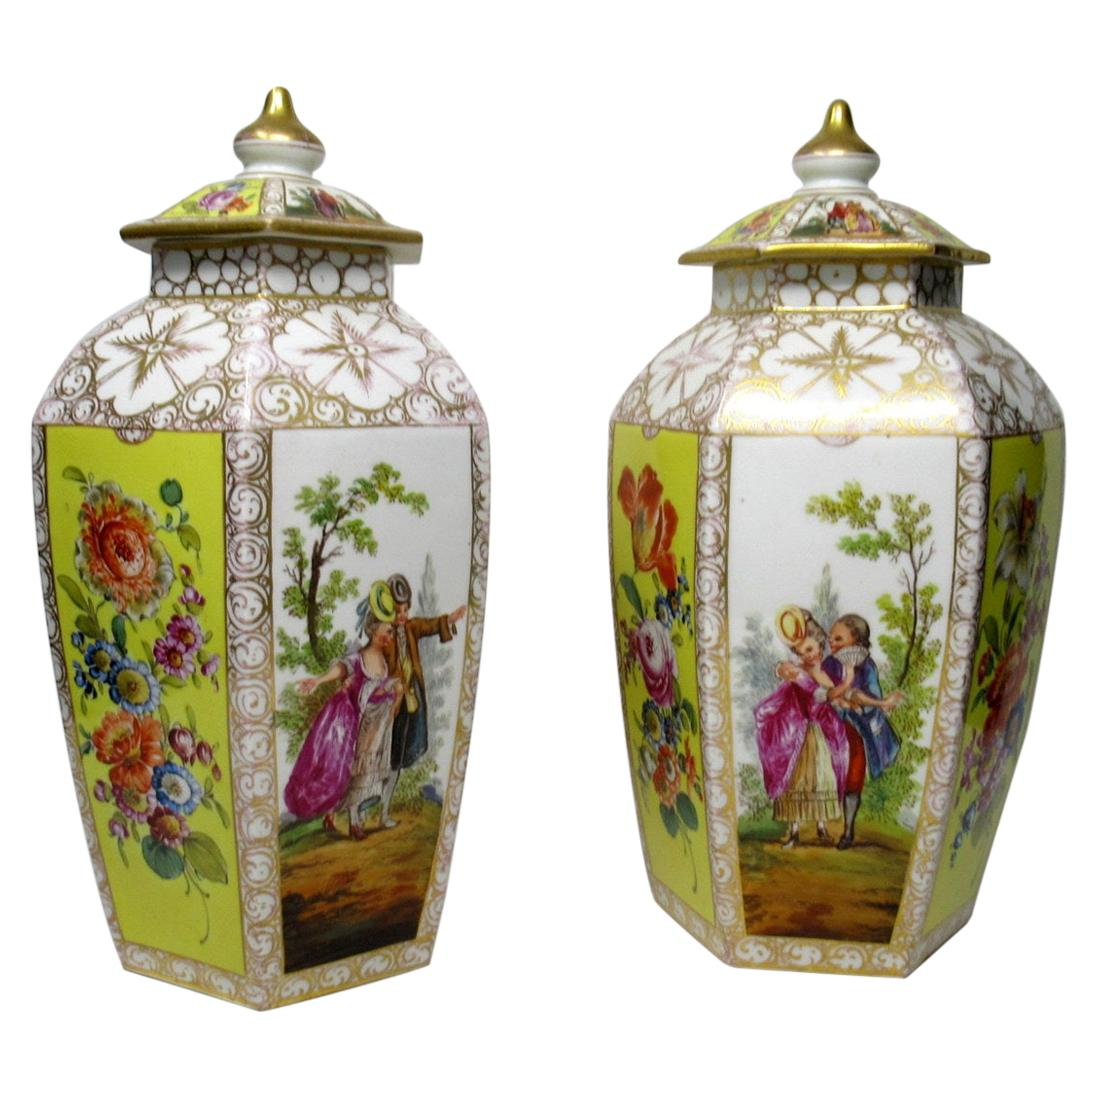 Pair of German Helena Wolfson Dresden Hand Painted Vases Yellow Floral